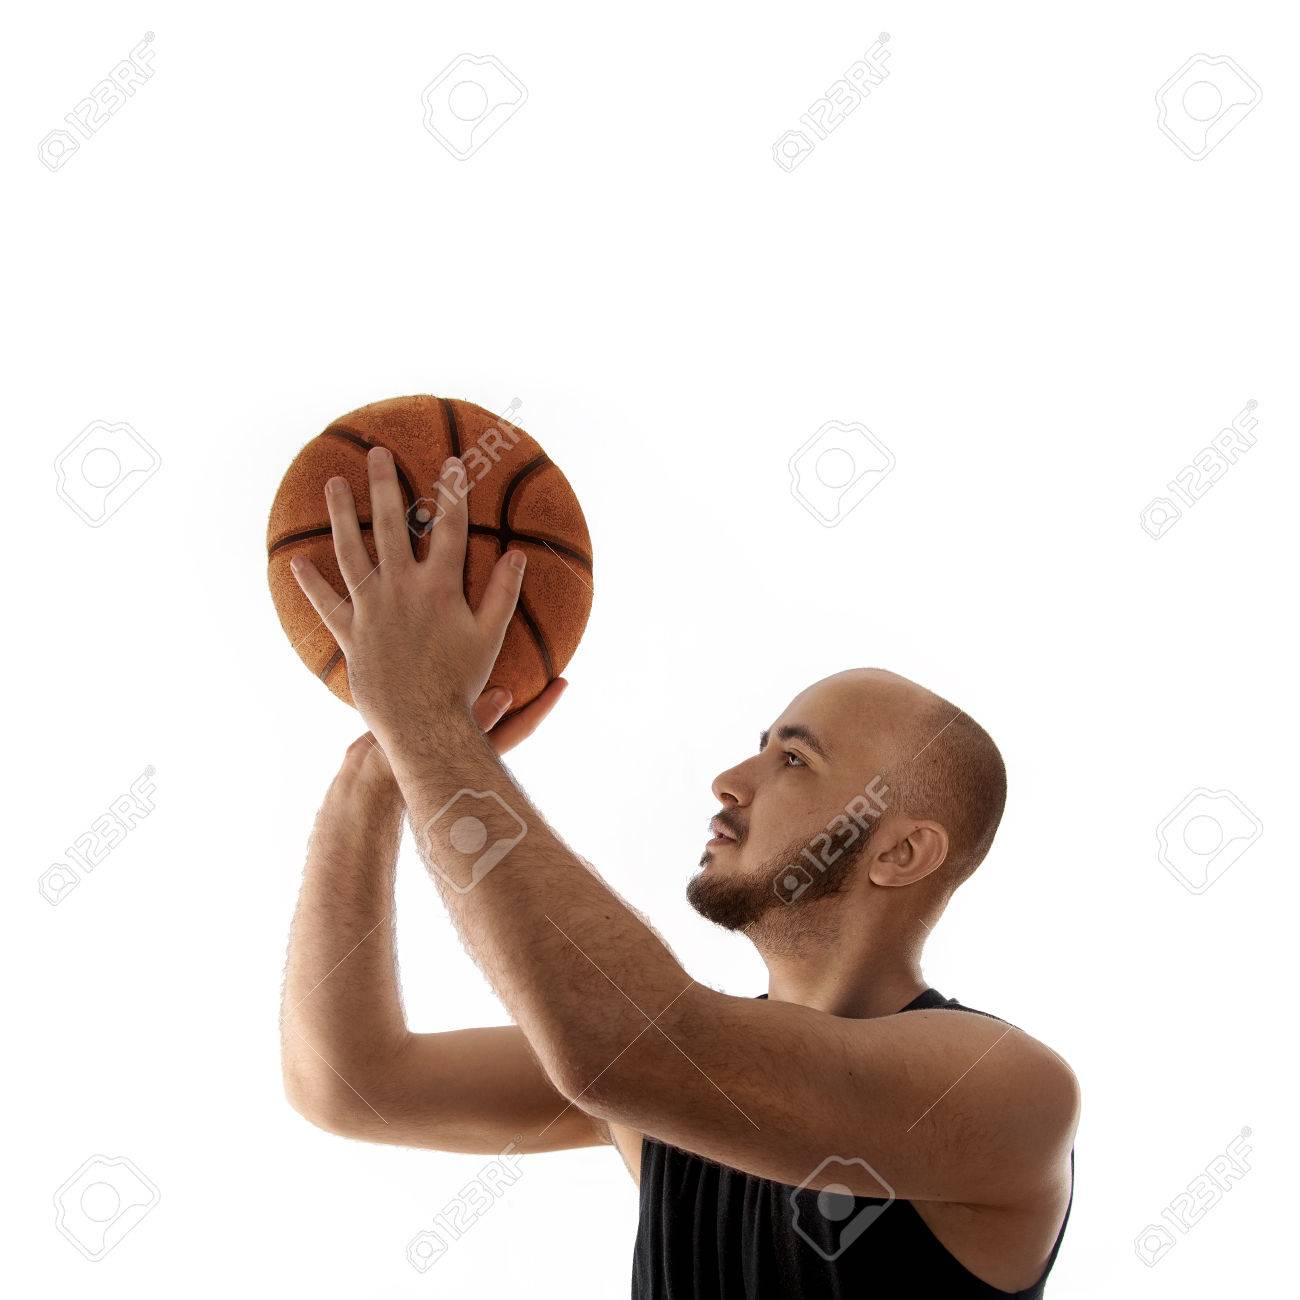 basketball player shooting free throw on white background